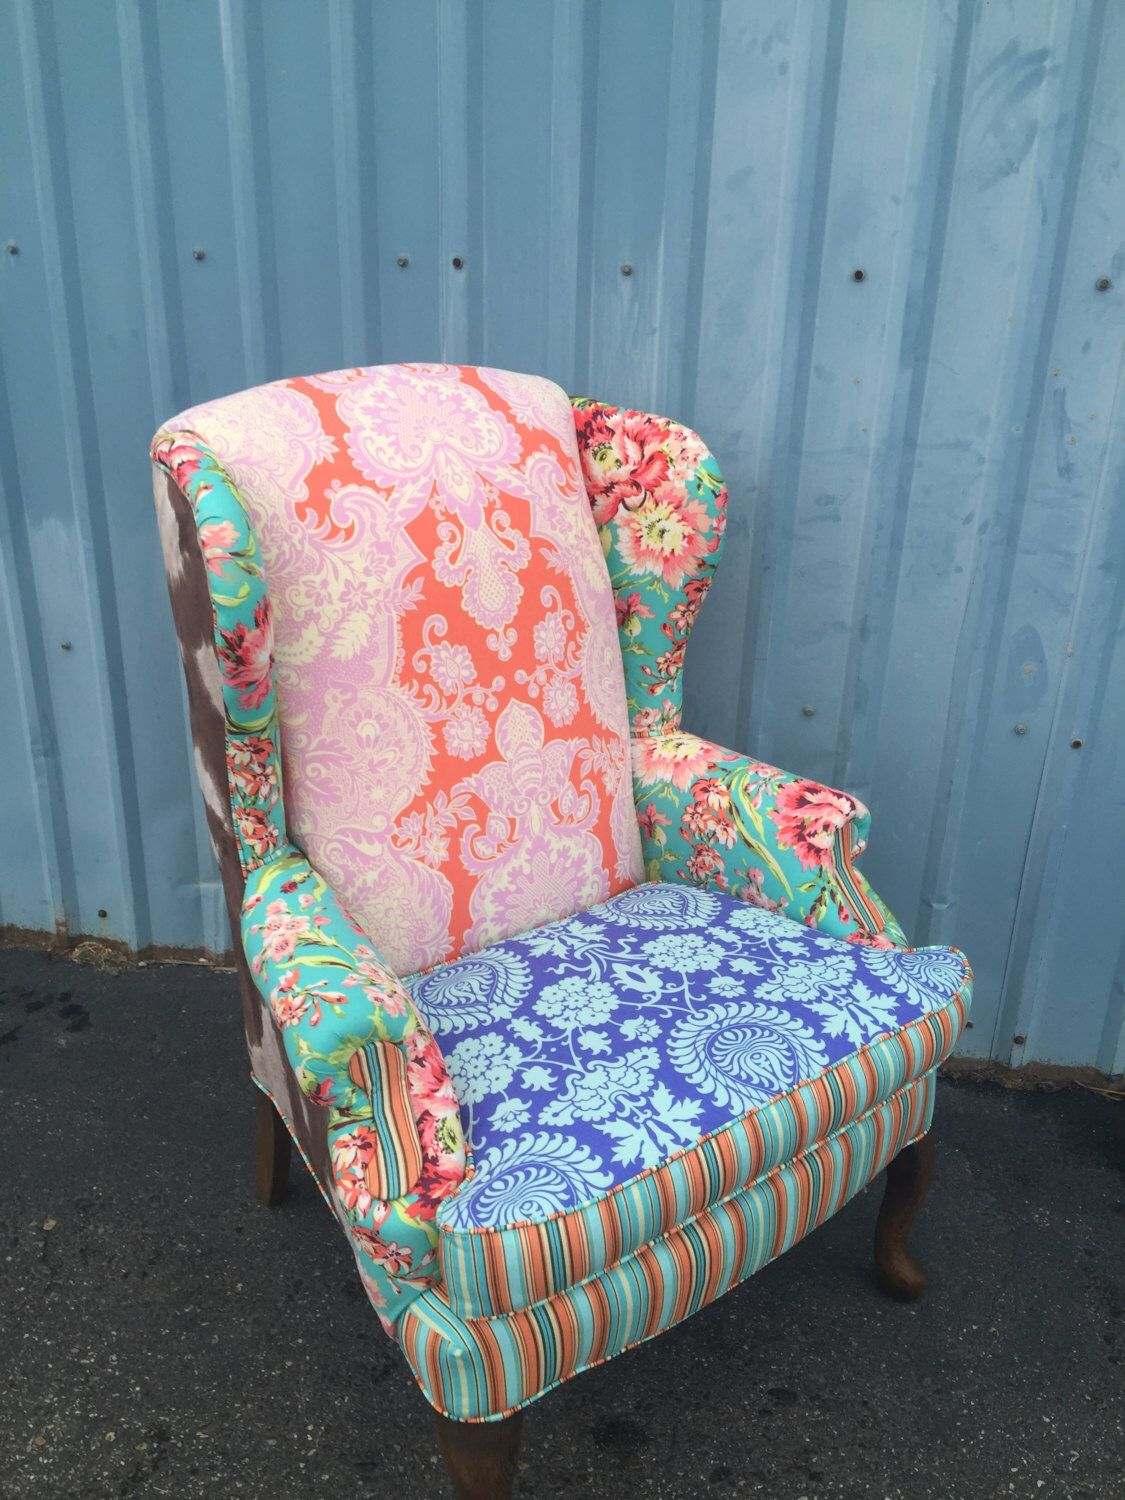 Wingback Chair Upholstered Vintage with Amy Butler Fabric